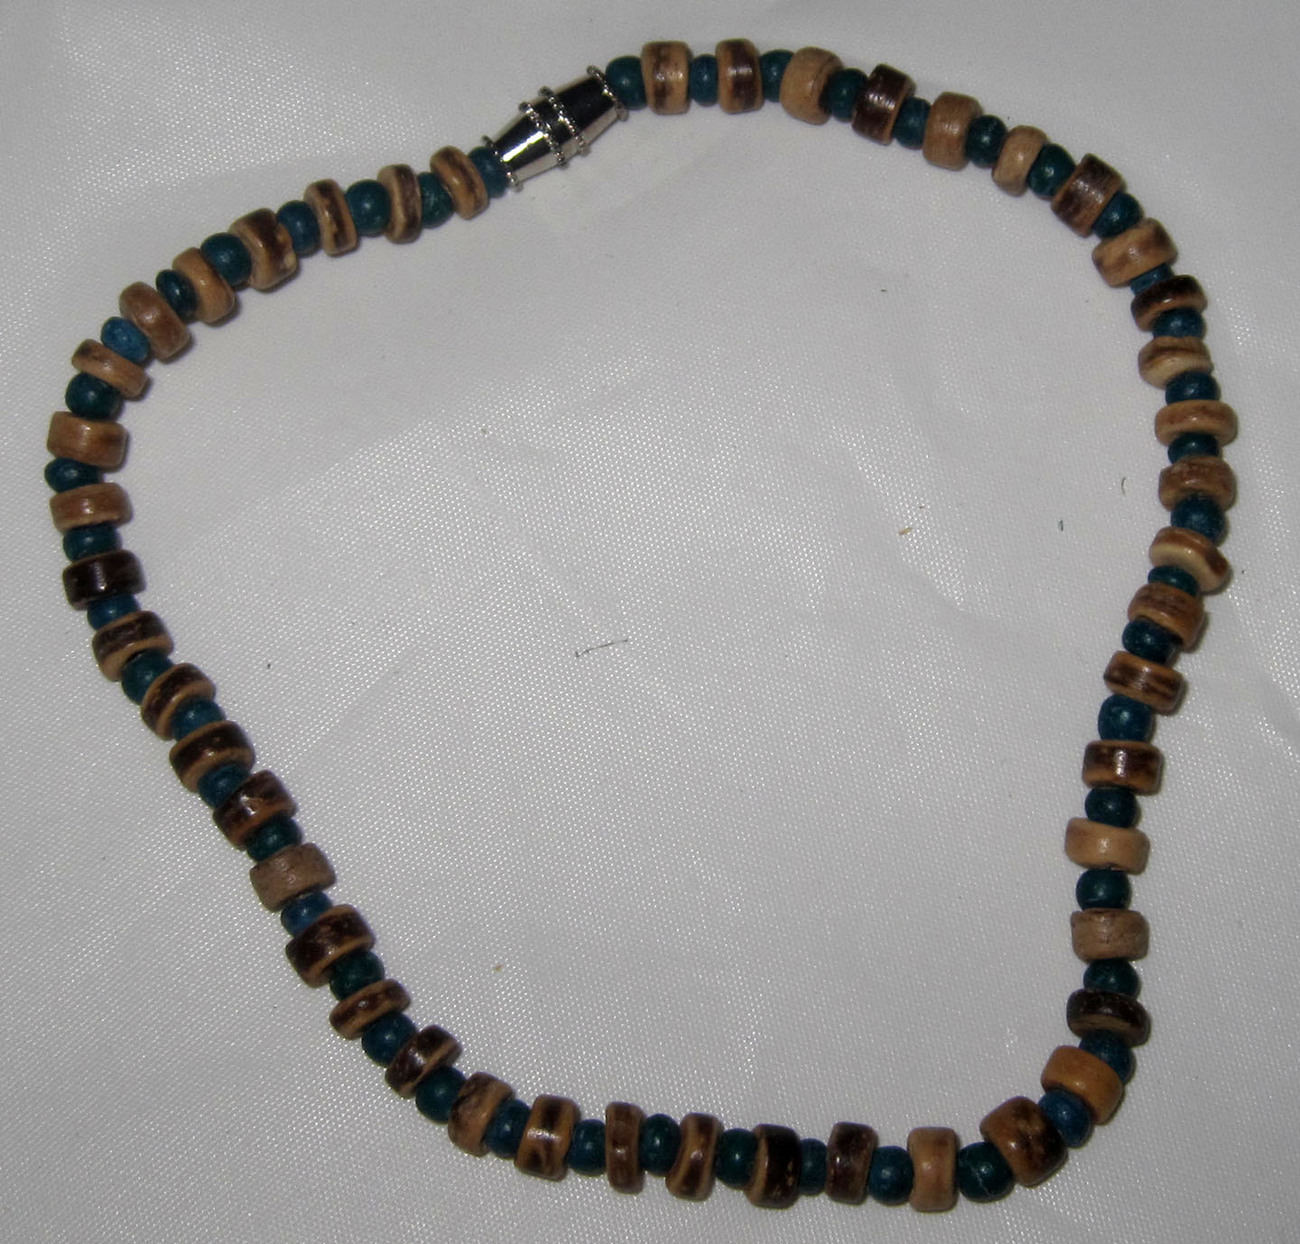 New wholesale lot dozen wooden bead bracelets green for Costume jewelry sold by the dozen